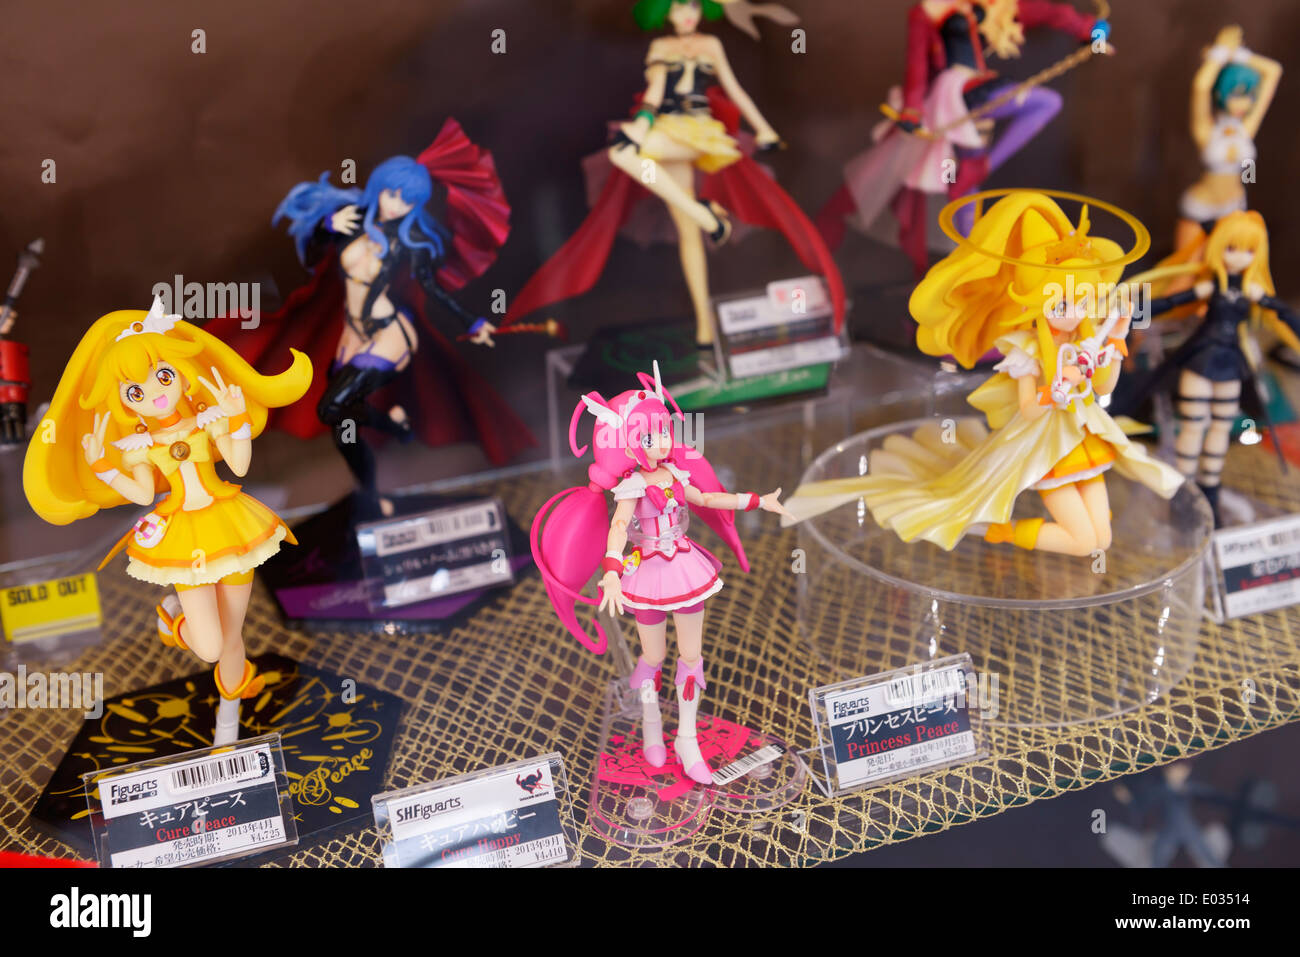 Cute anime figures Cure and other characters on display in a store, Tokyo, Japan. - Stock Image